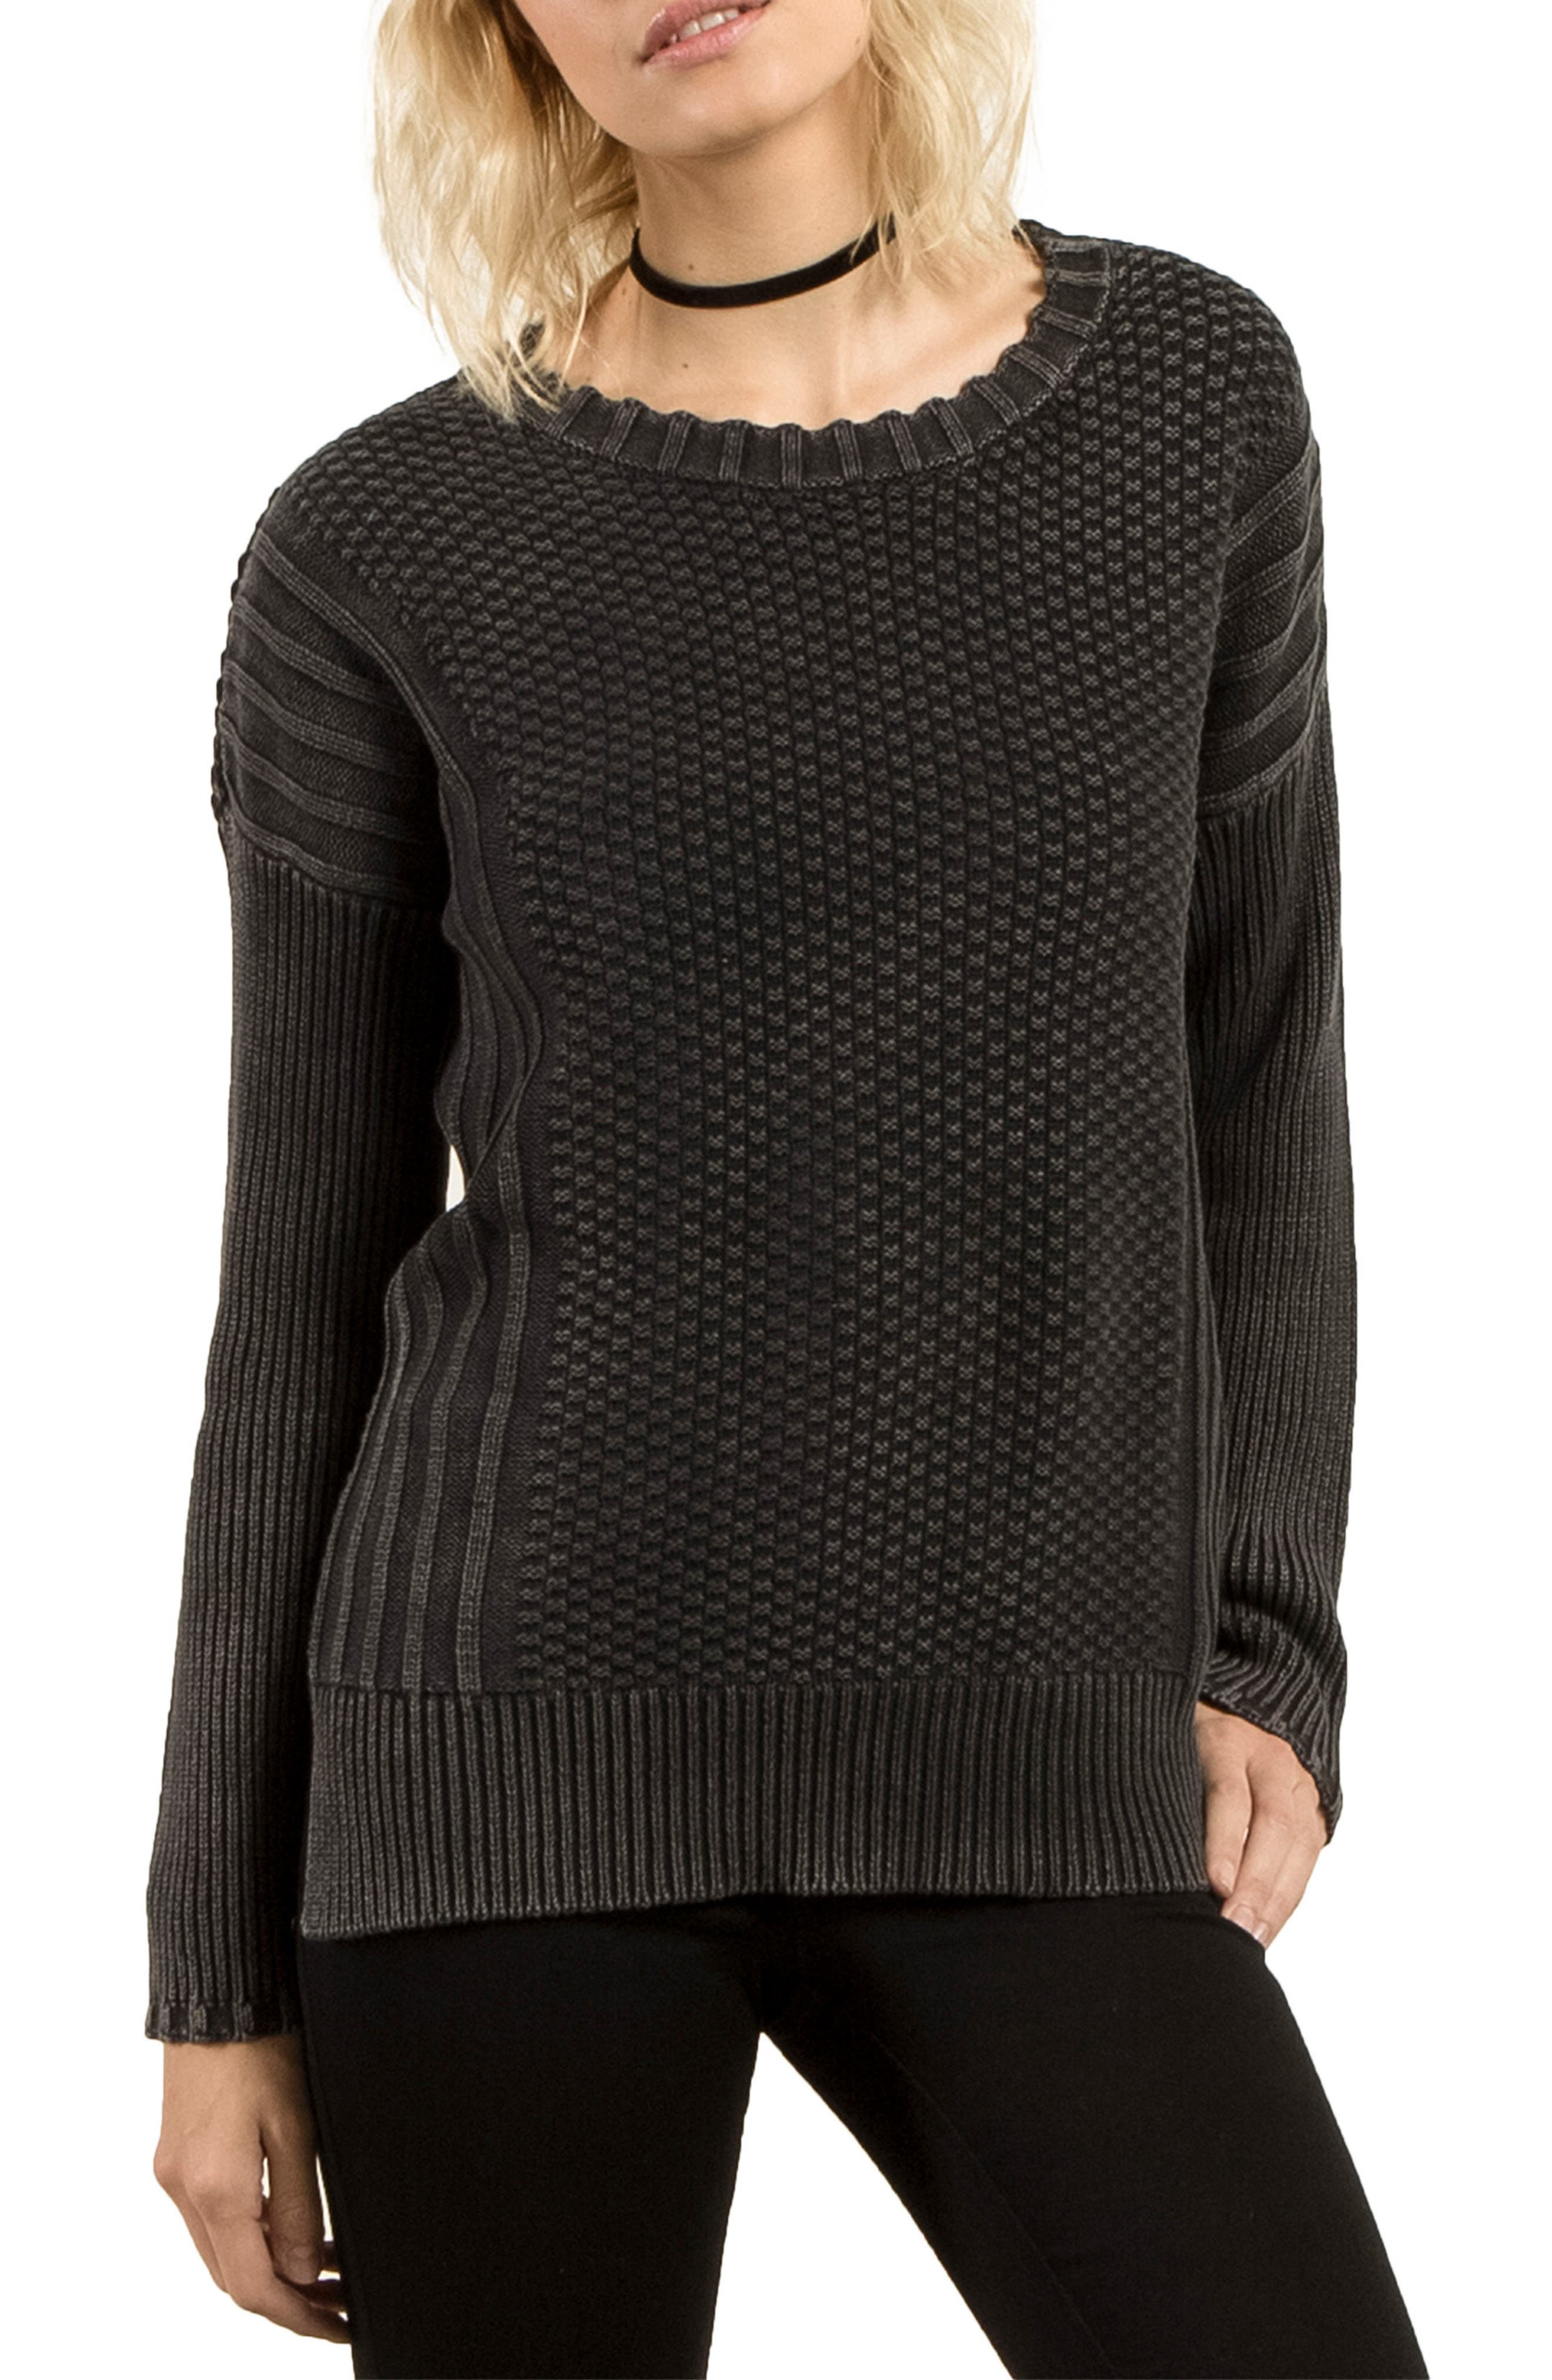 Twisted Mr Cotton Sweater,                         Main,                         color, 001